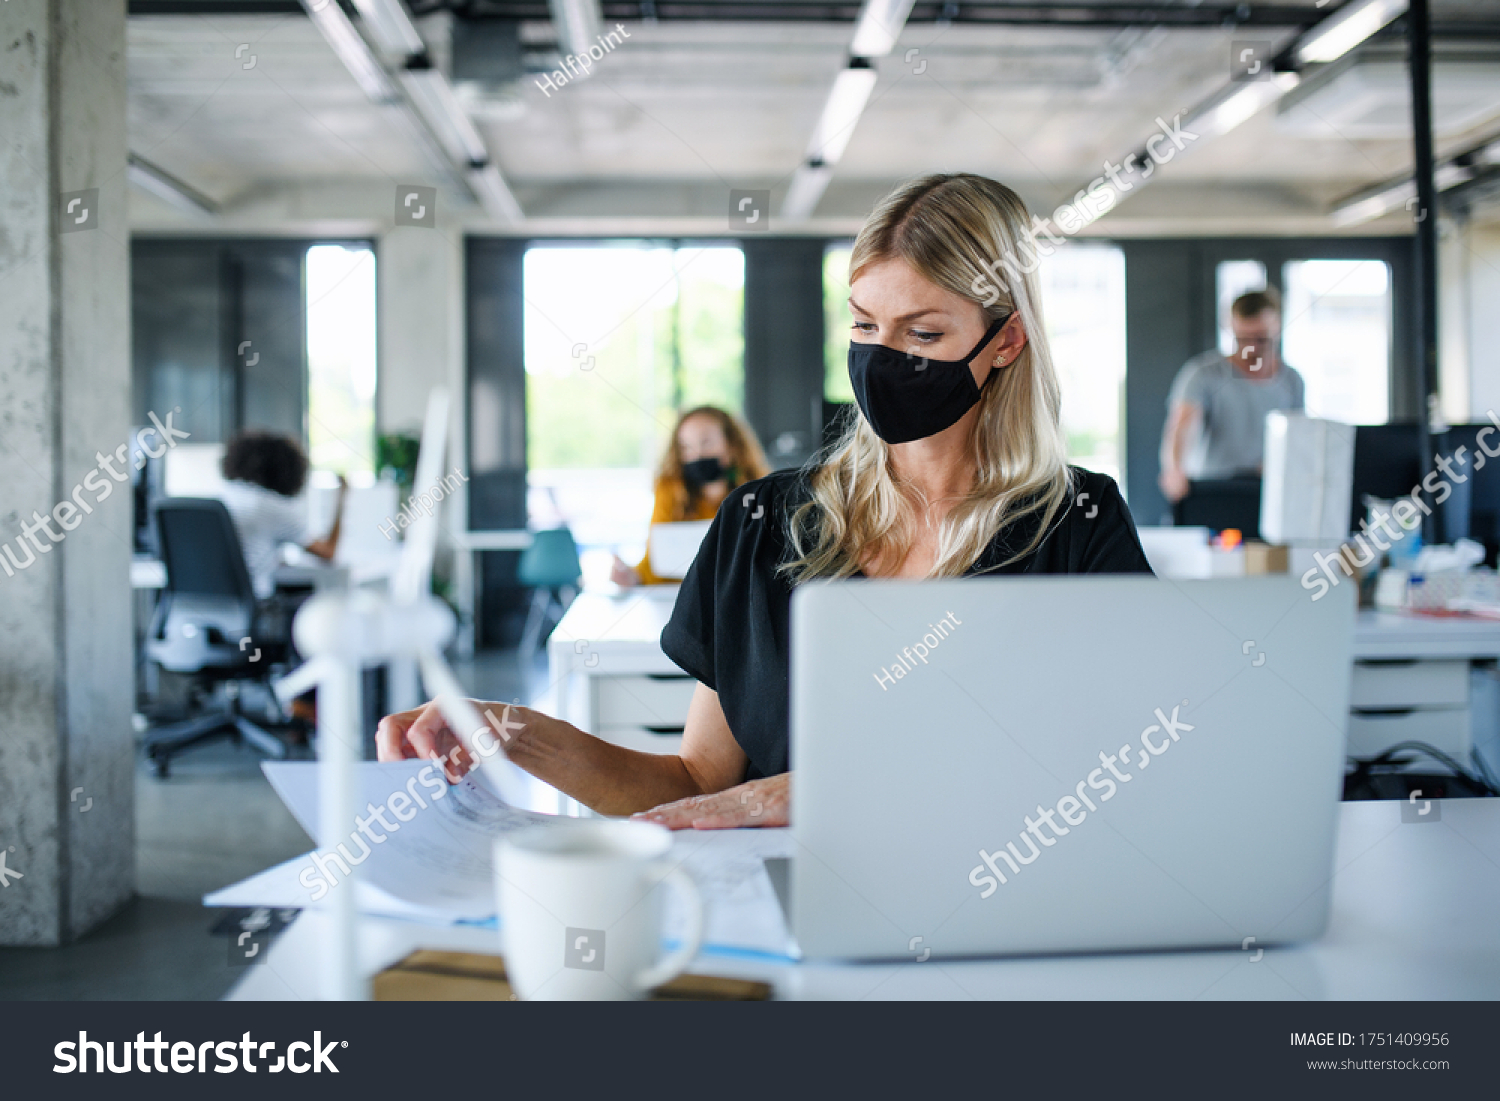 Young woman with face mask back at work in office after lockdown, working. #1751409956